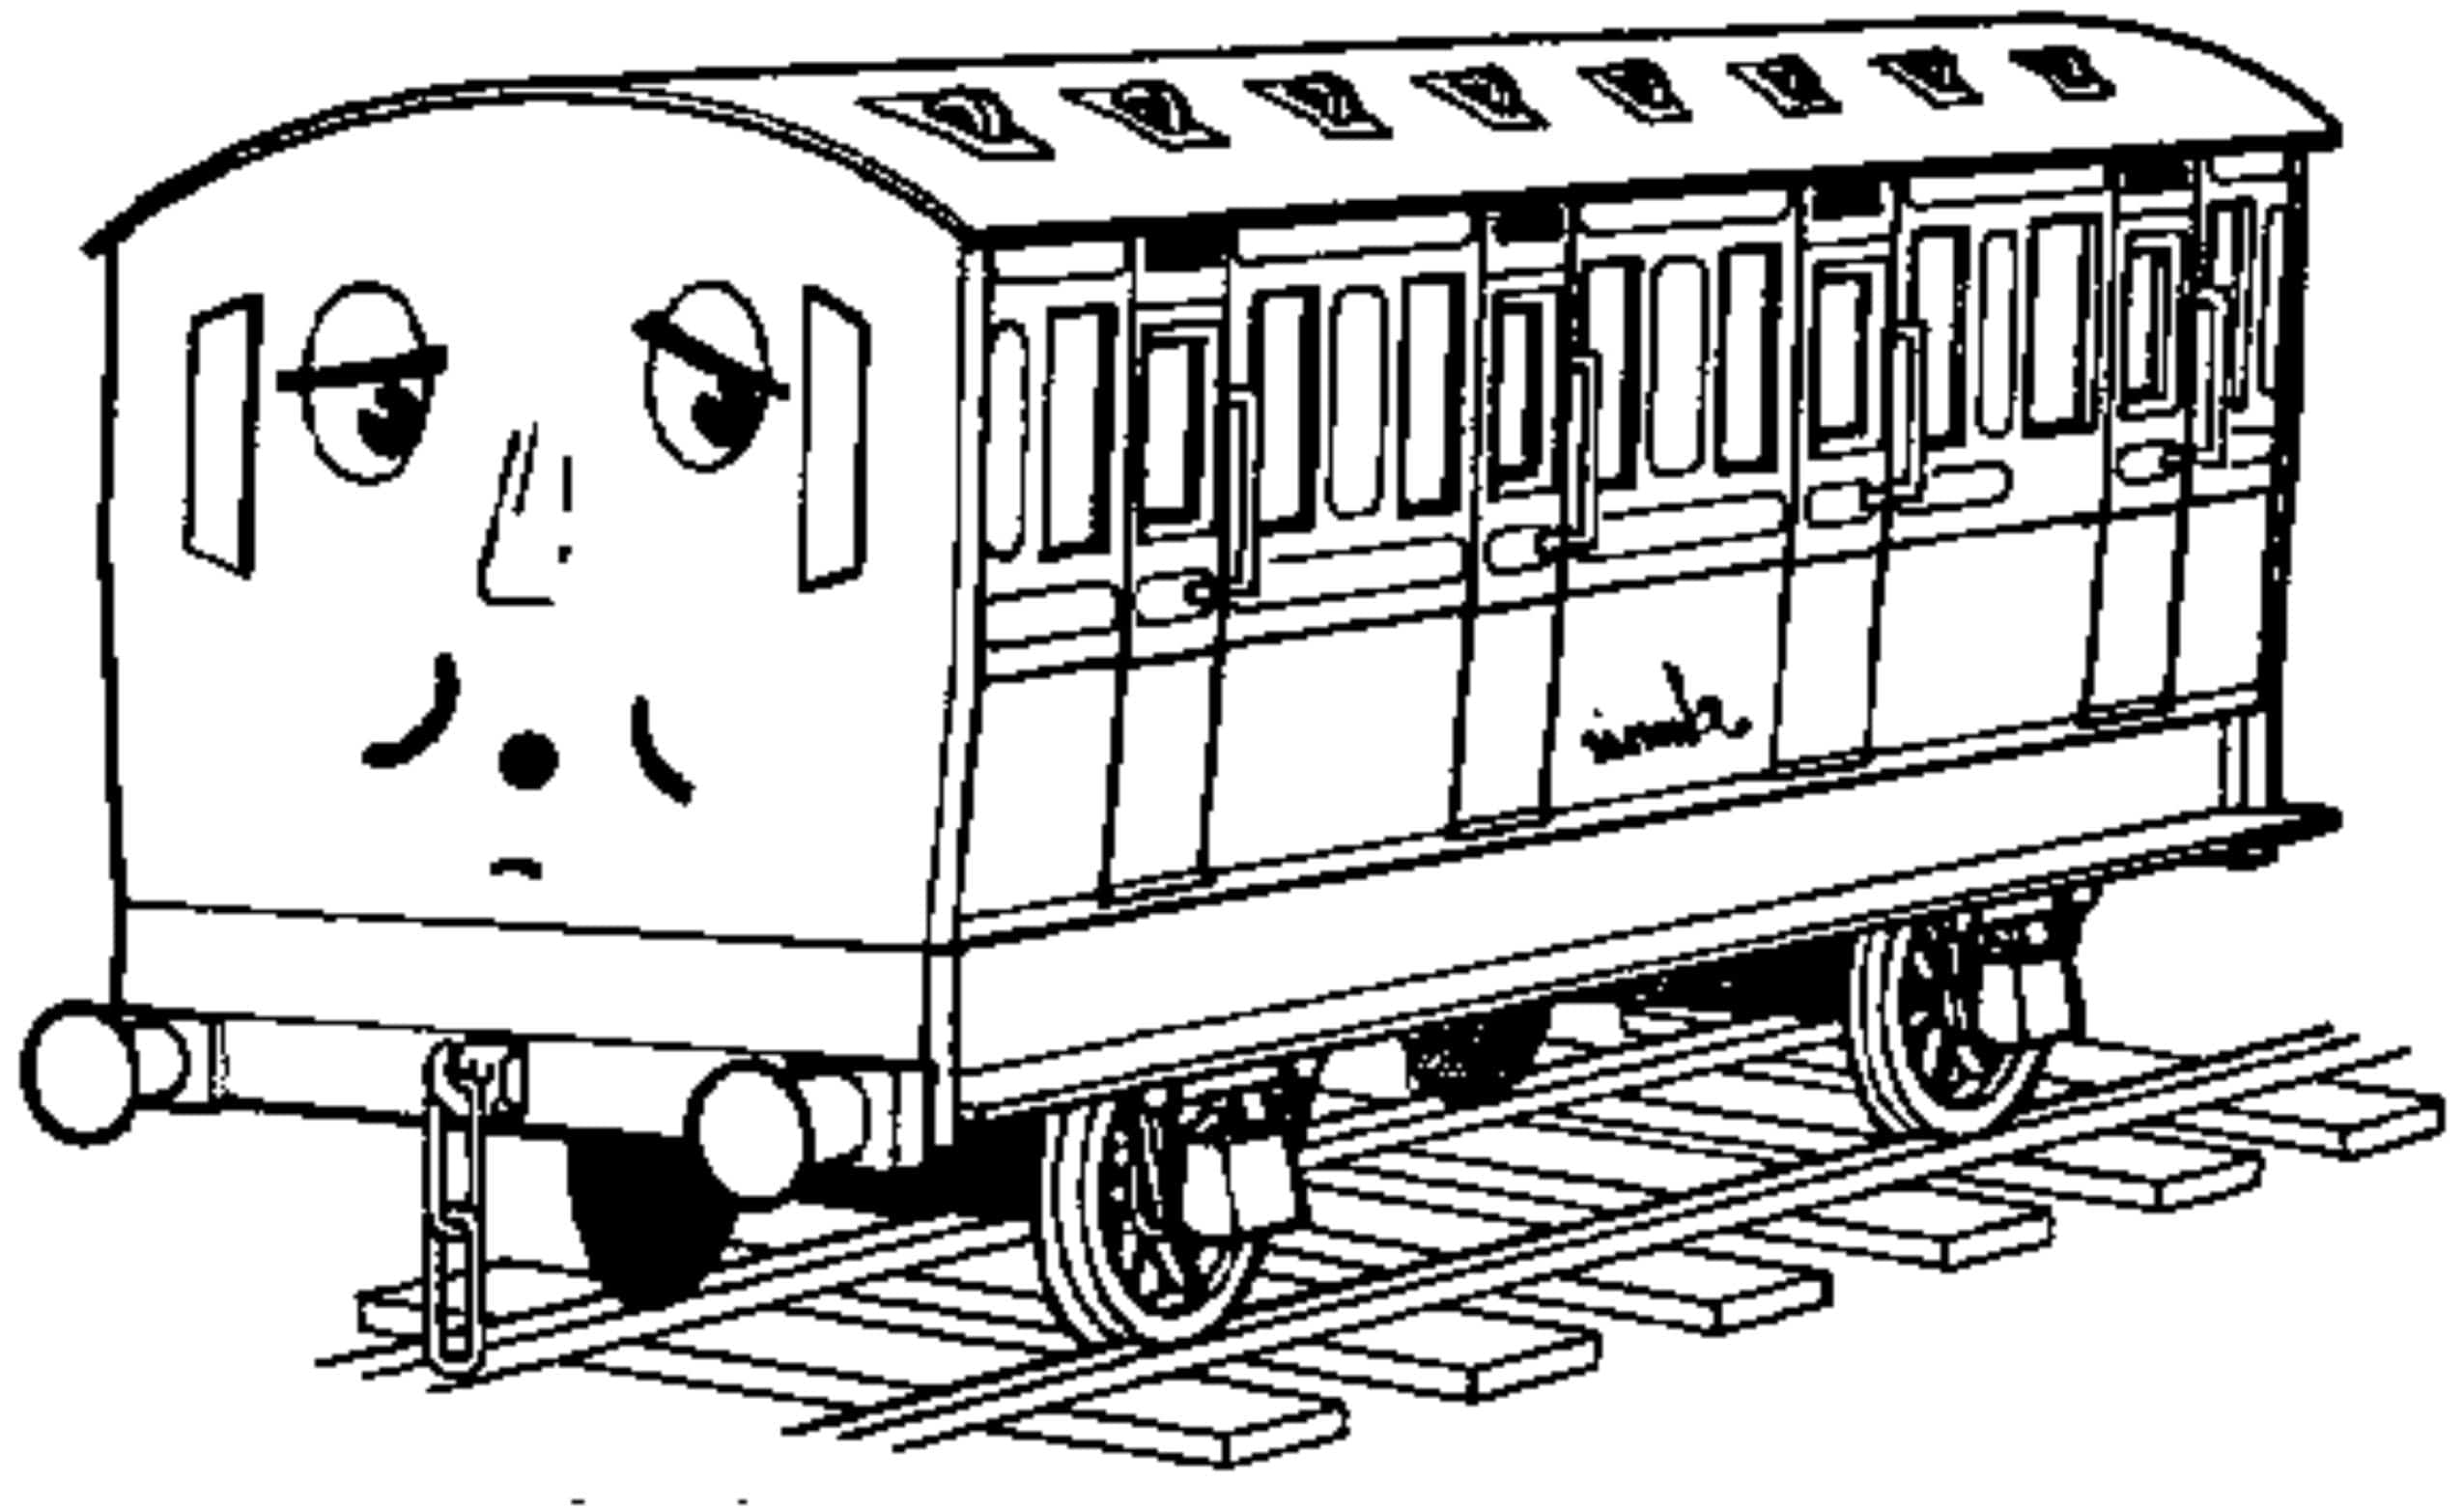 thomas and friends coloring pages printable - Thomas Friend Coloring Pages